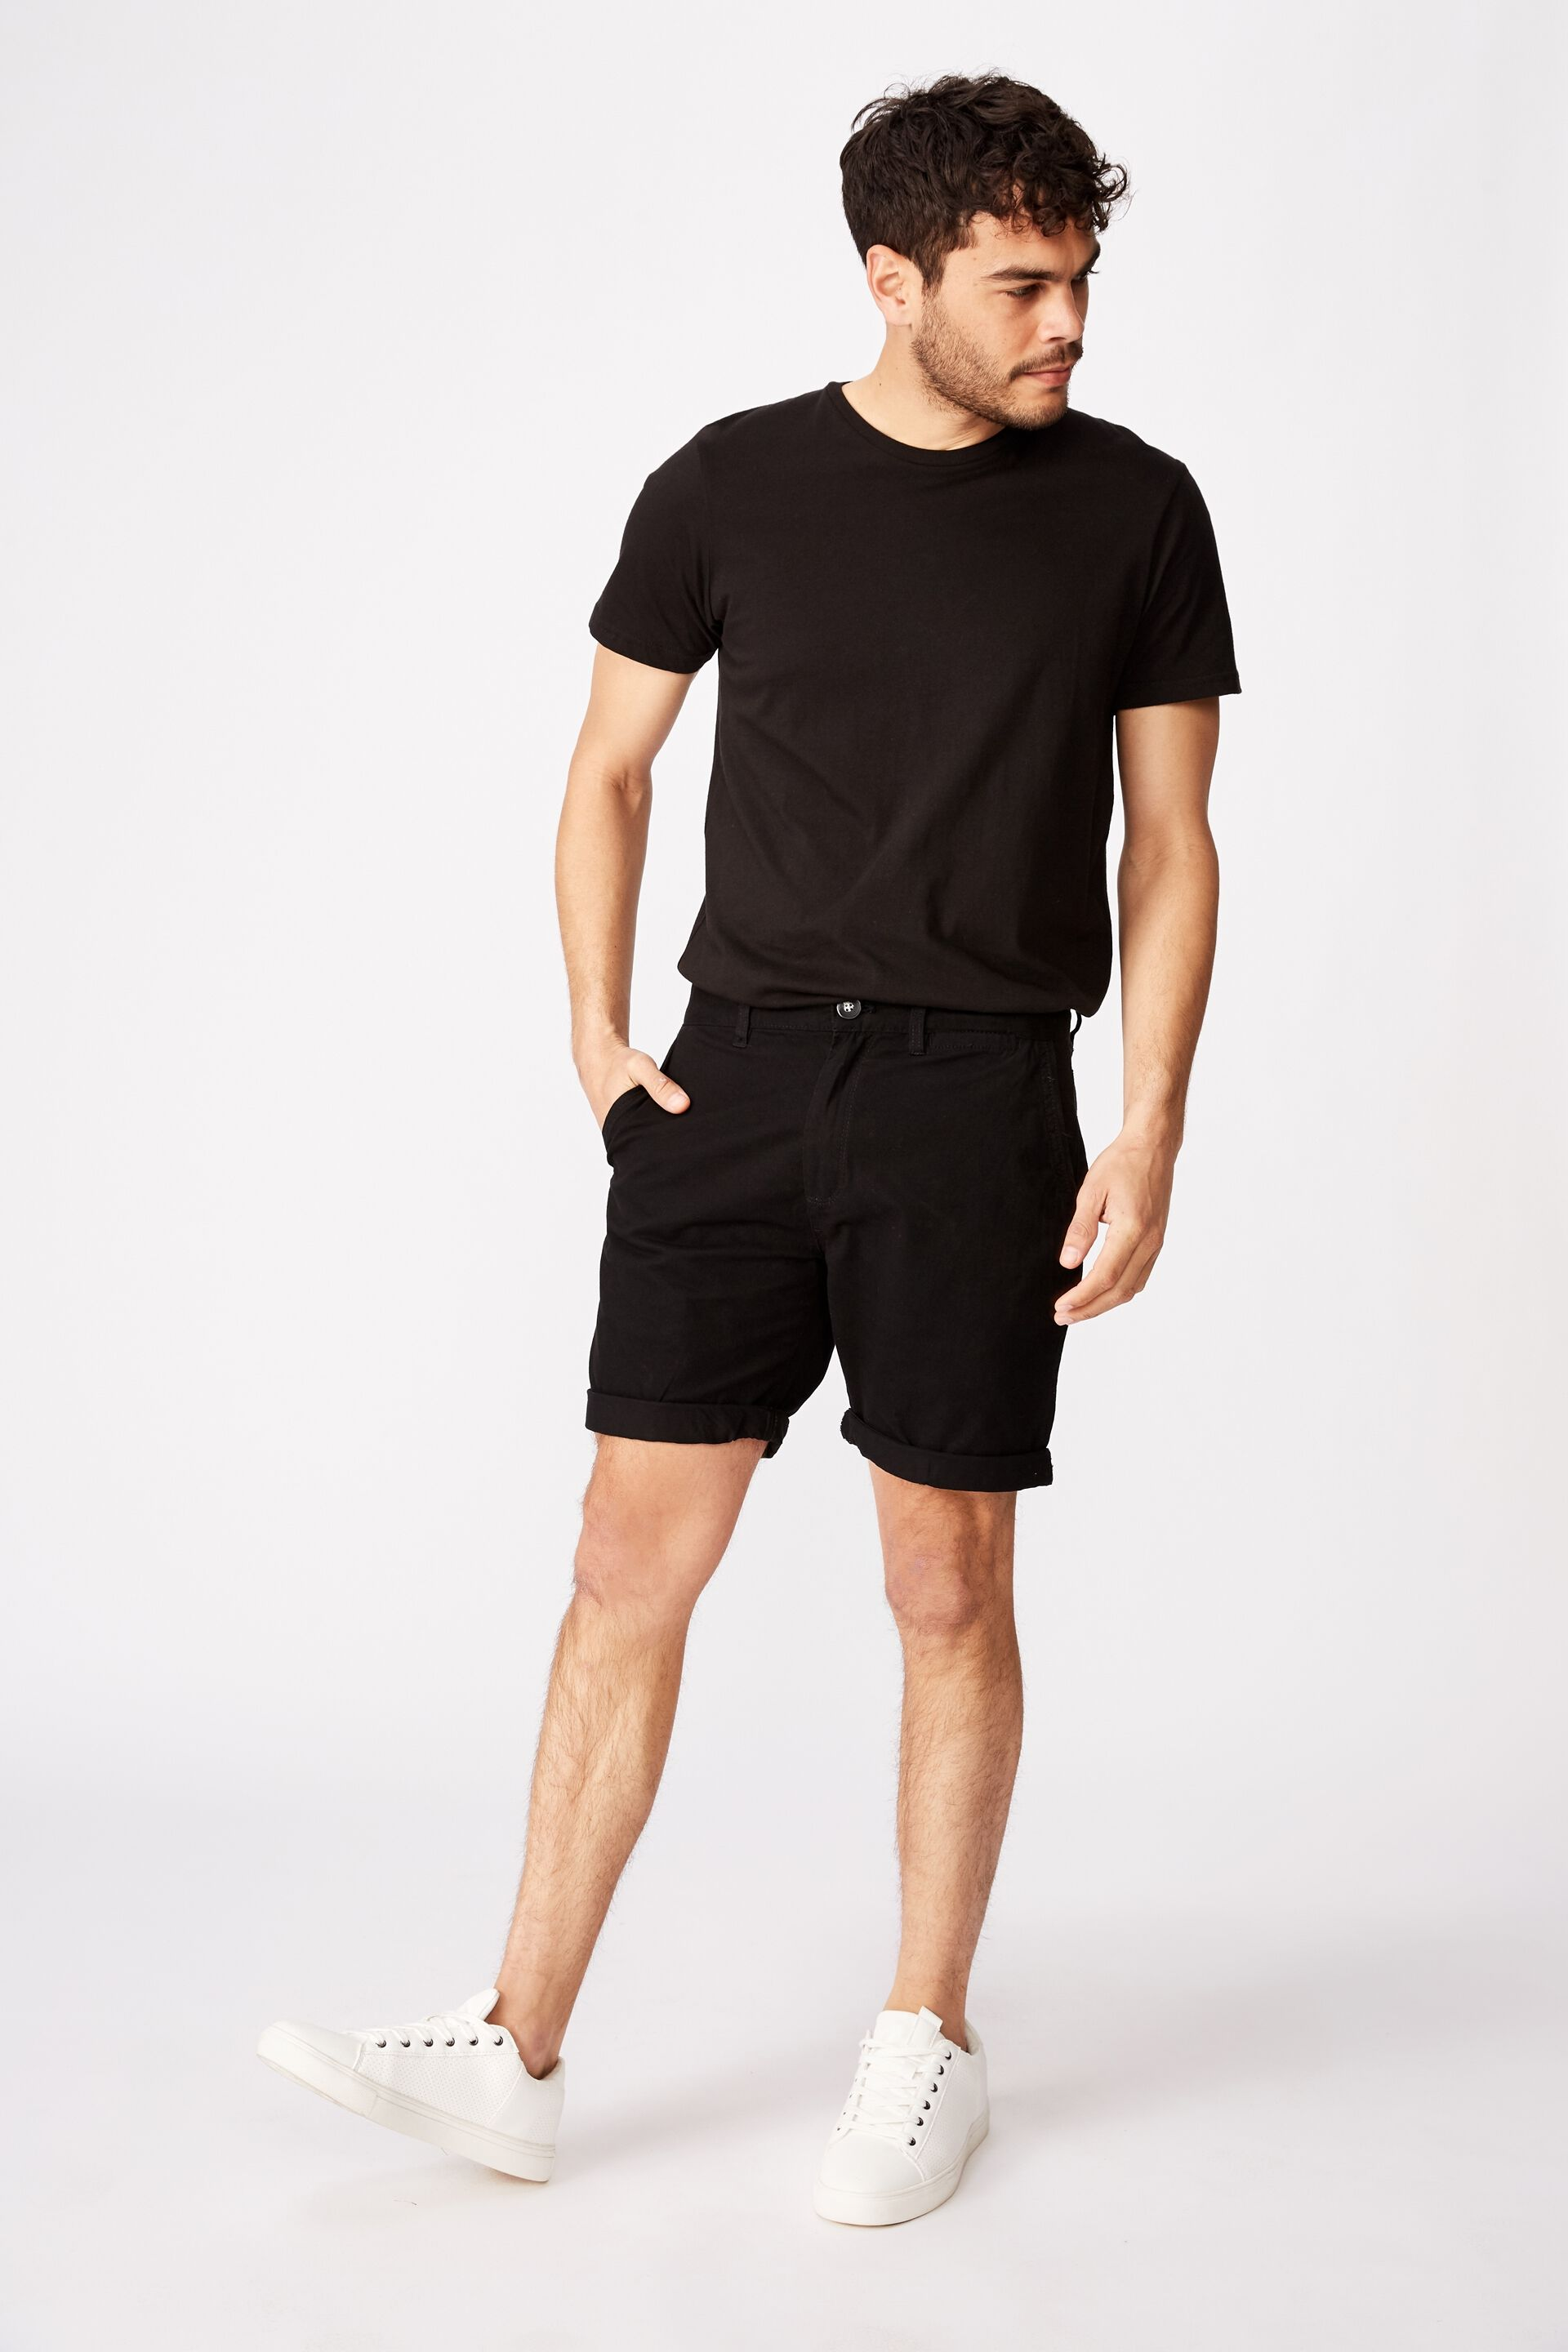 Shorts Mens Denimamp; MoreCotton On Mens eHD9WEI2Y